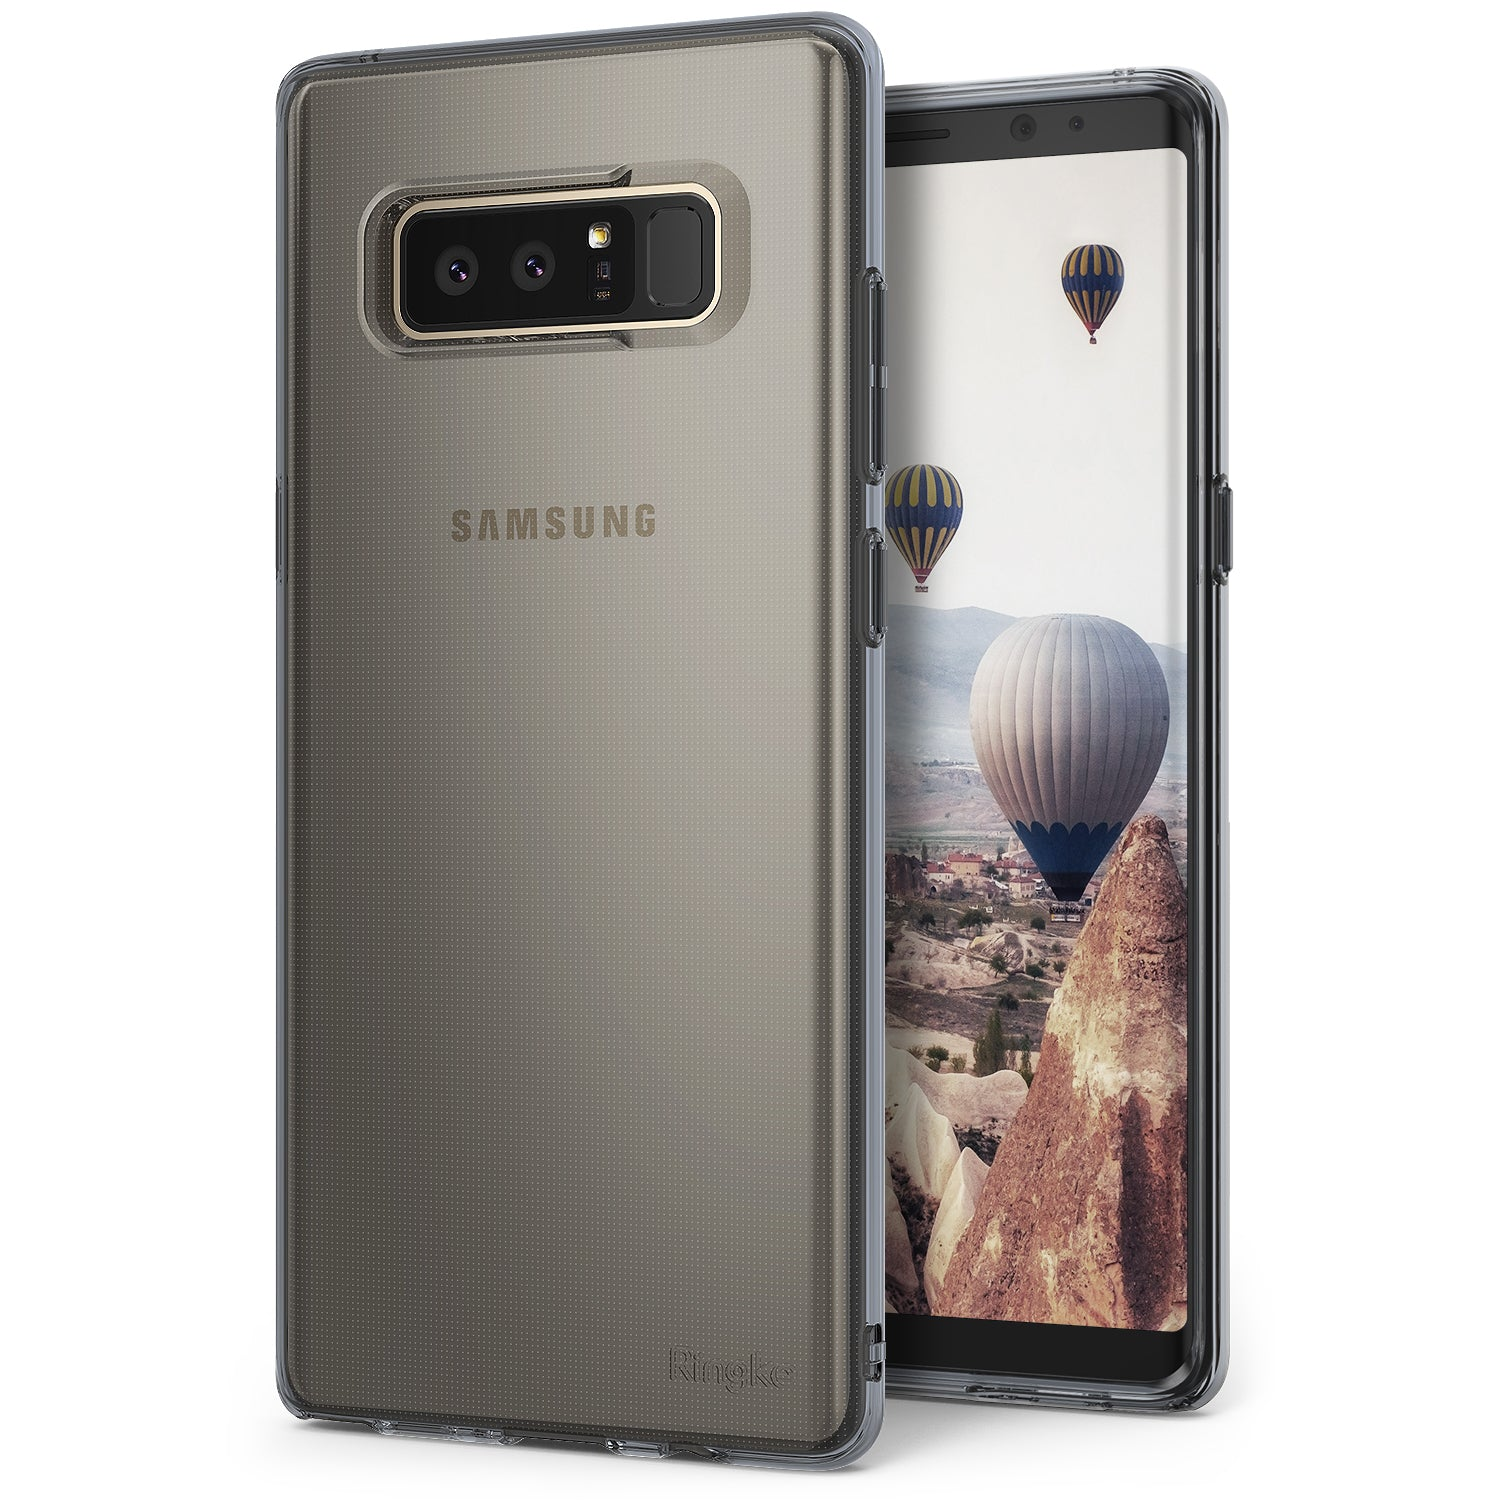 Galaxy Note 8 Case   Ringke Air – Ringke Official Store